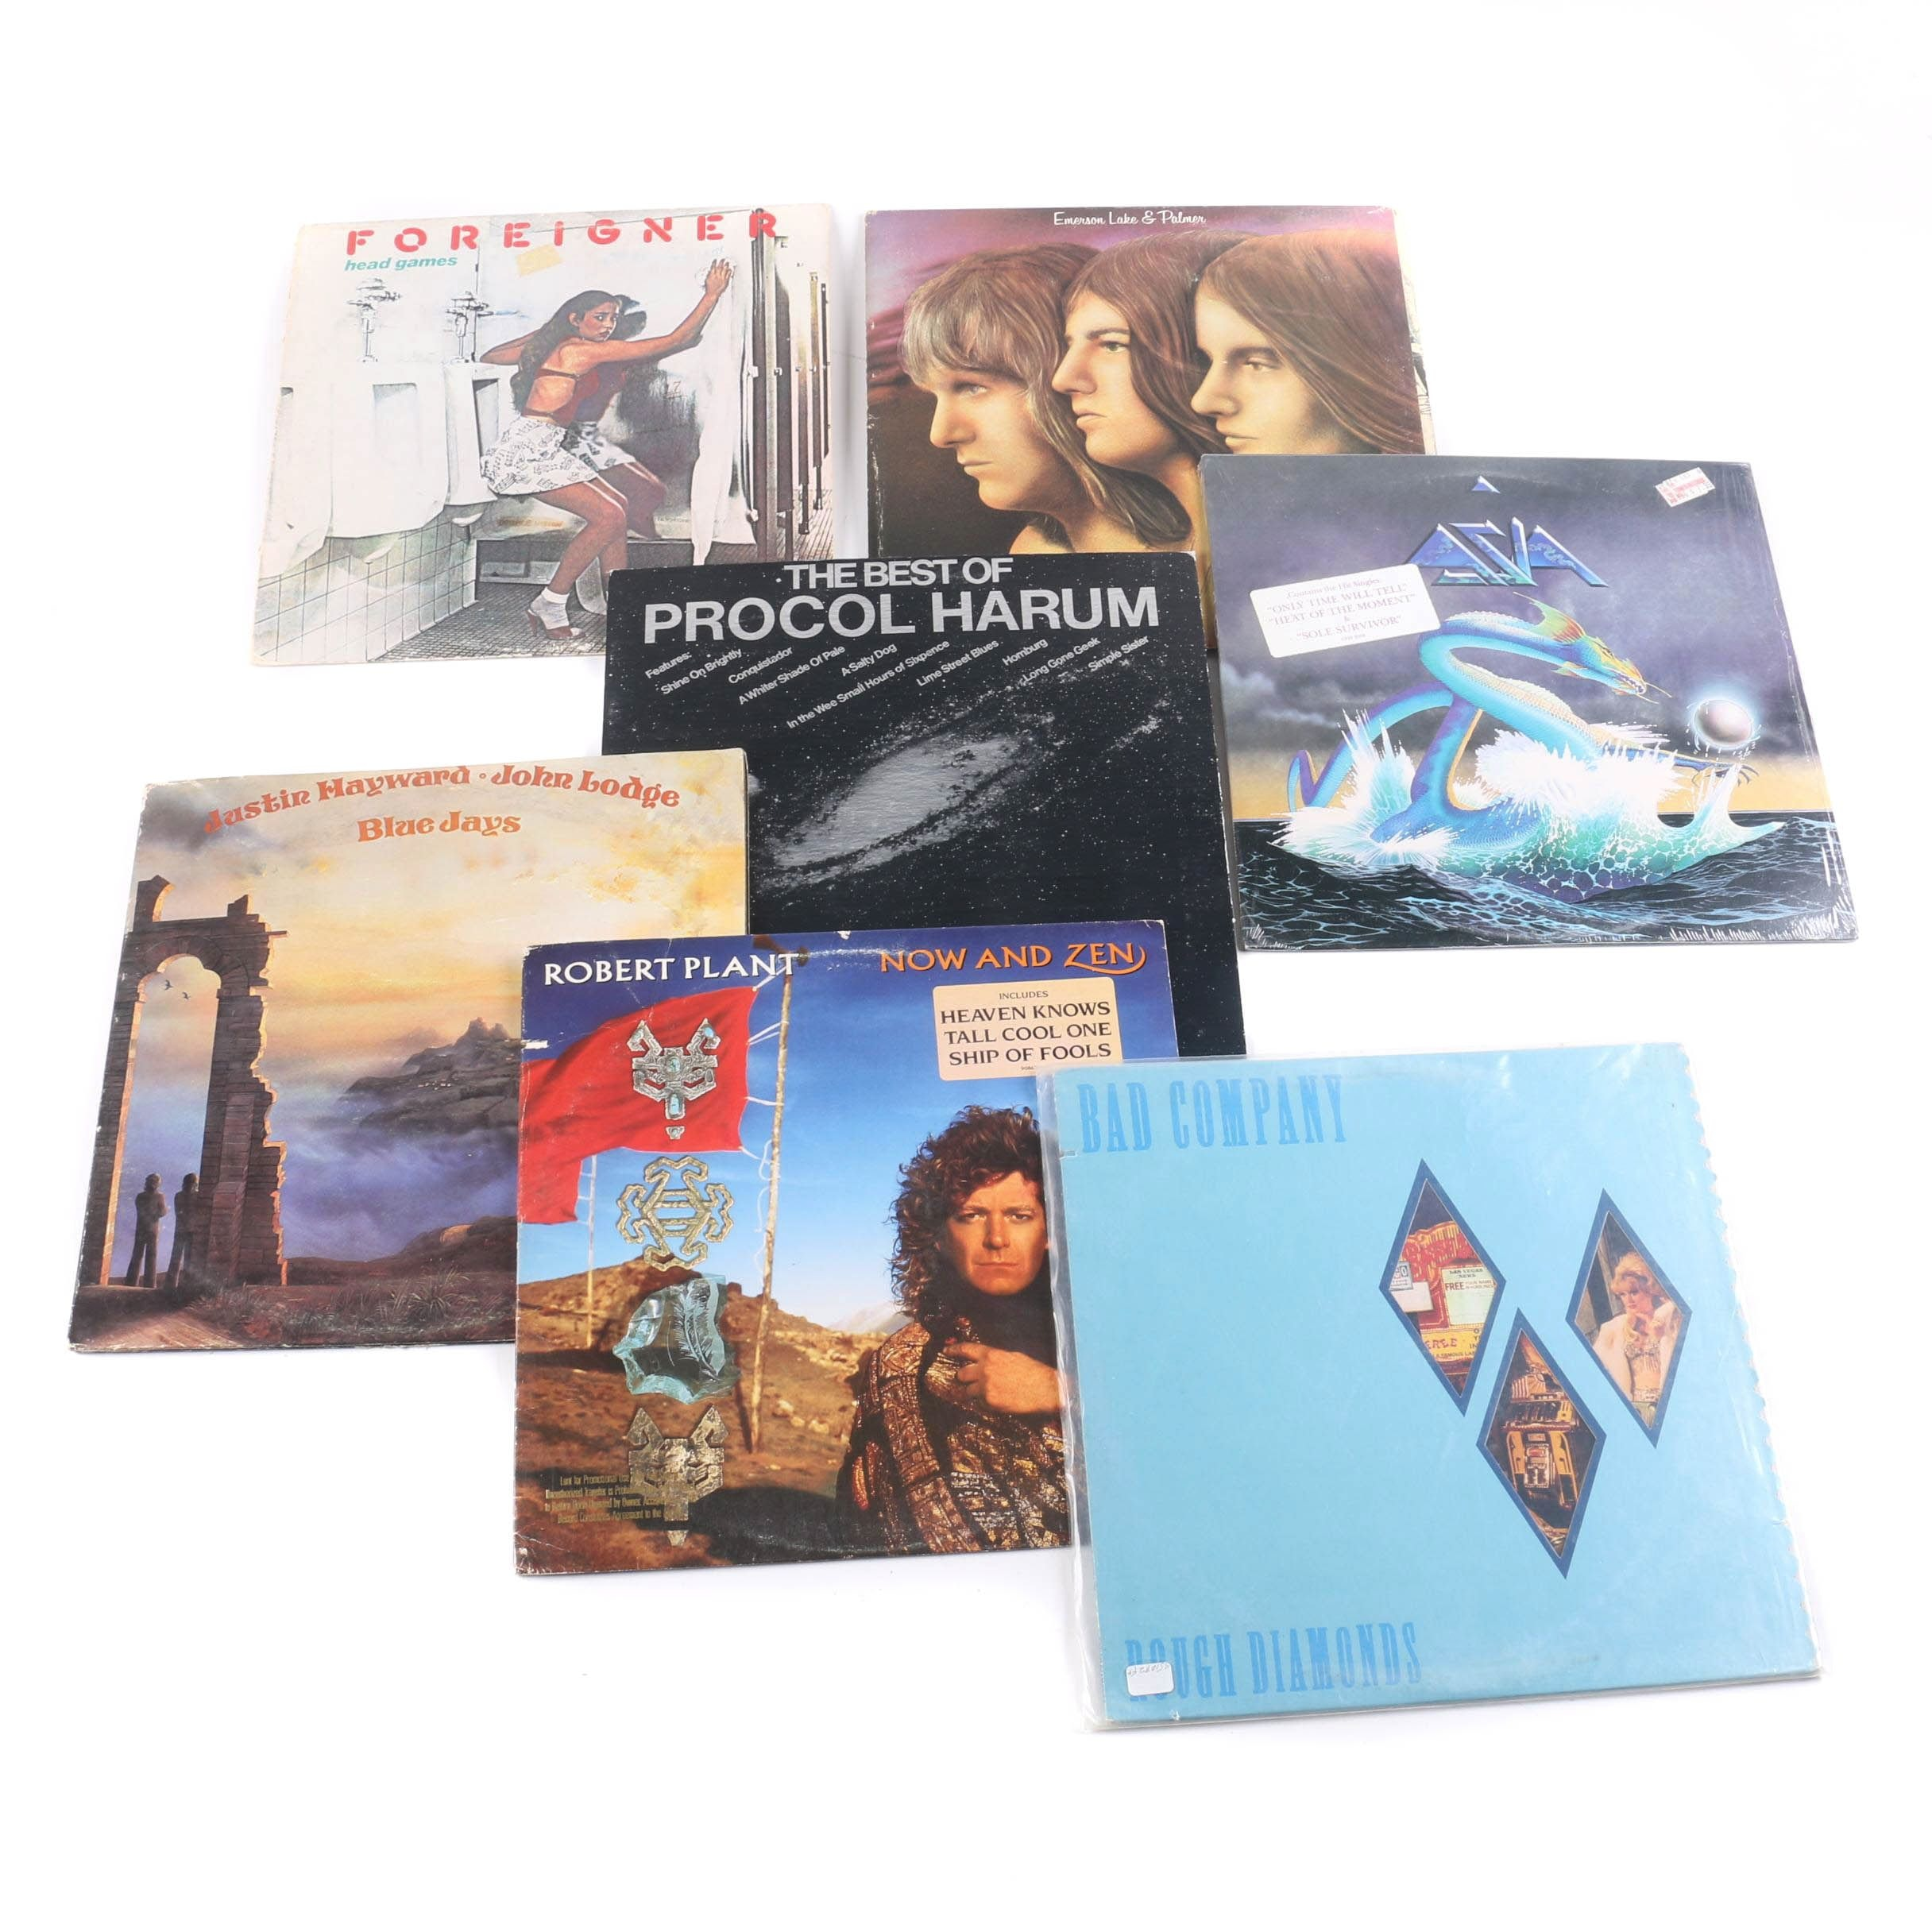 Robert Plant and Other Classic Rock LPs